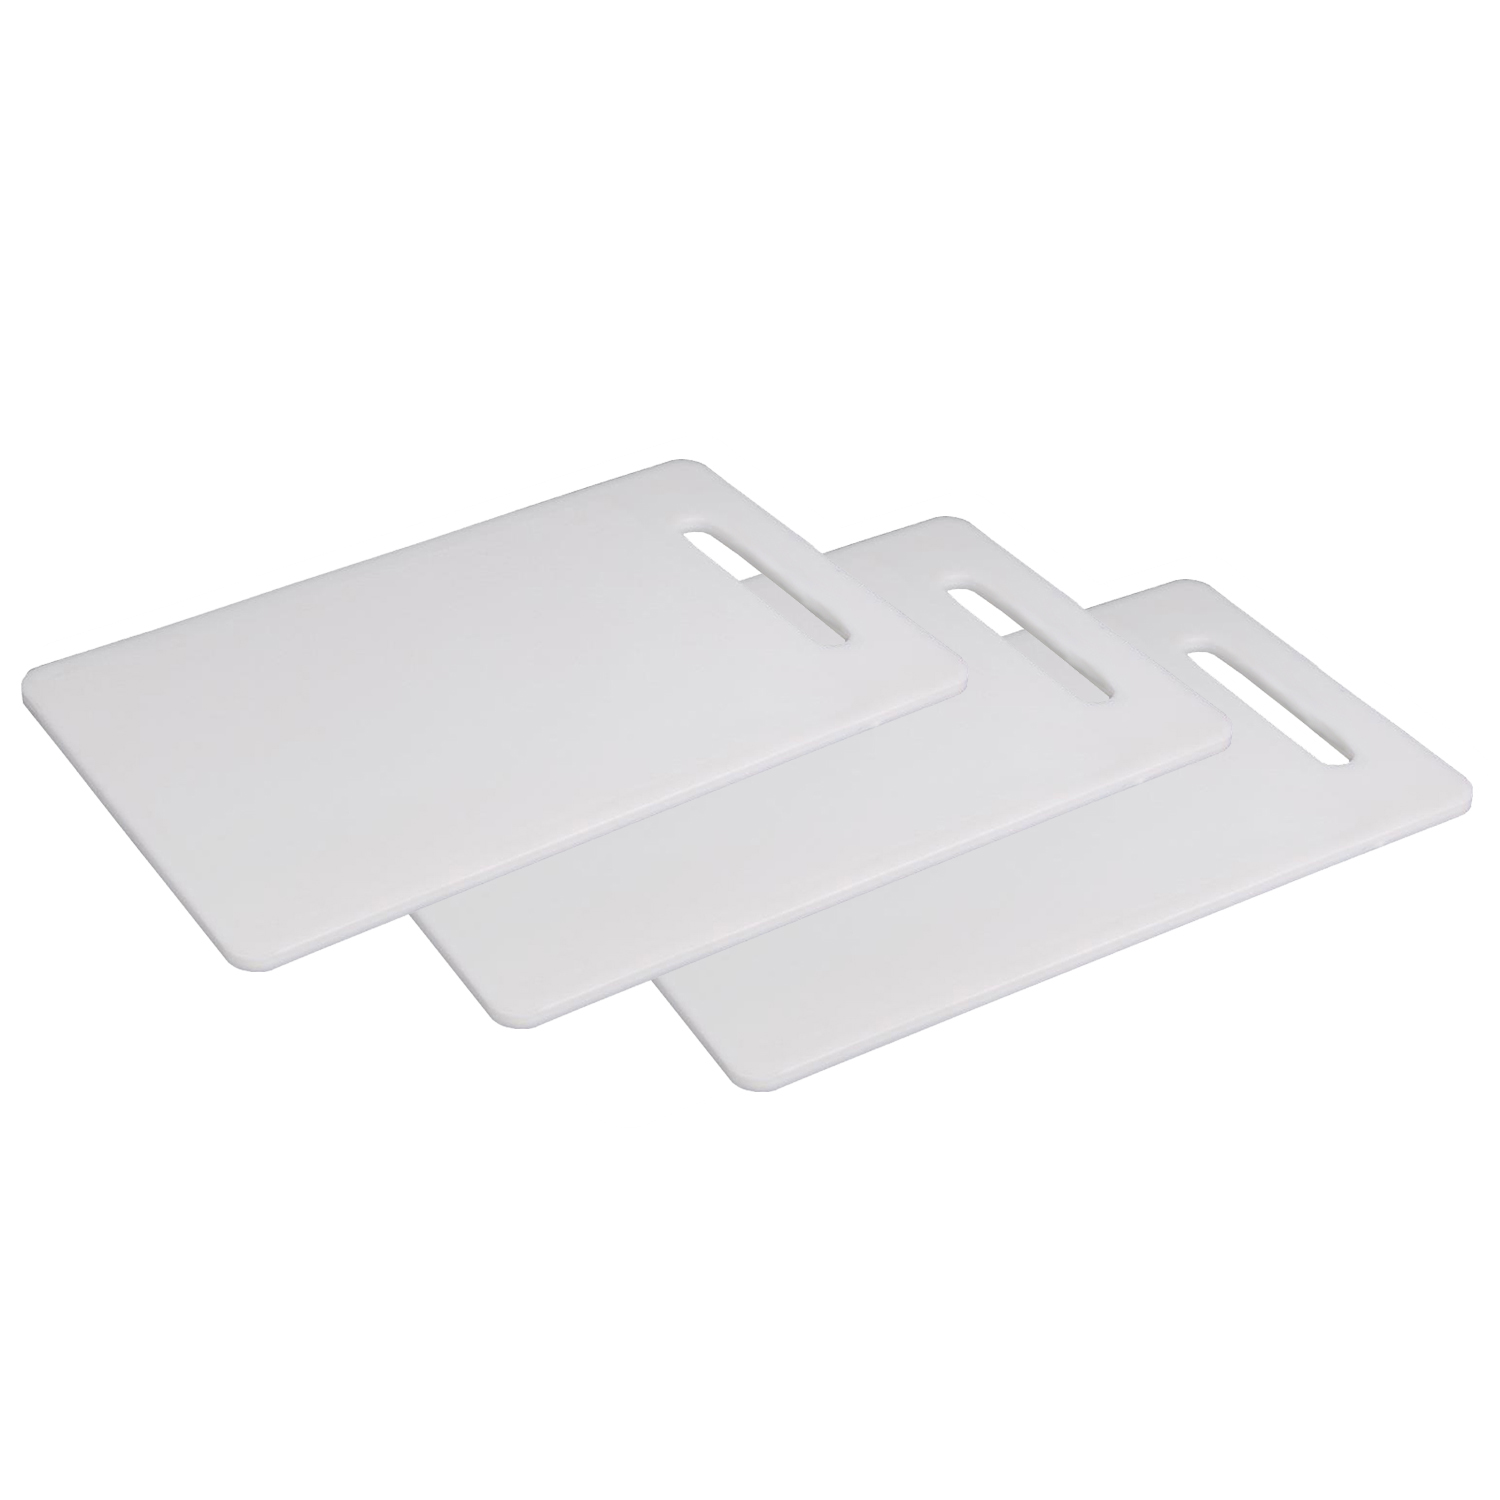 Kuber Industries Plastic 3 Pieces Chopping Cutting Board With Handle (White) -CTLTC11057